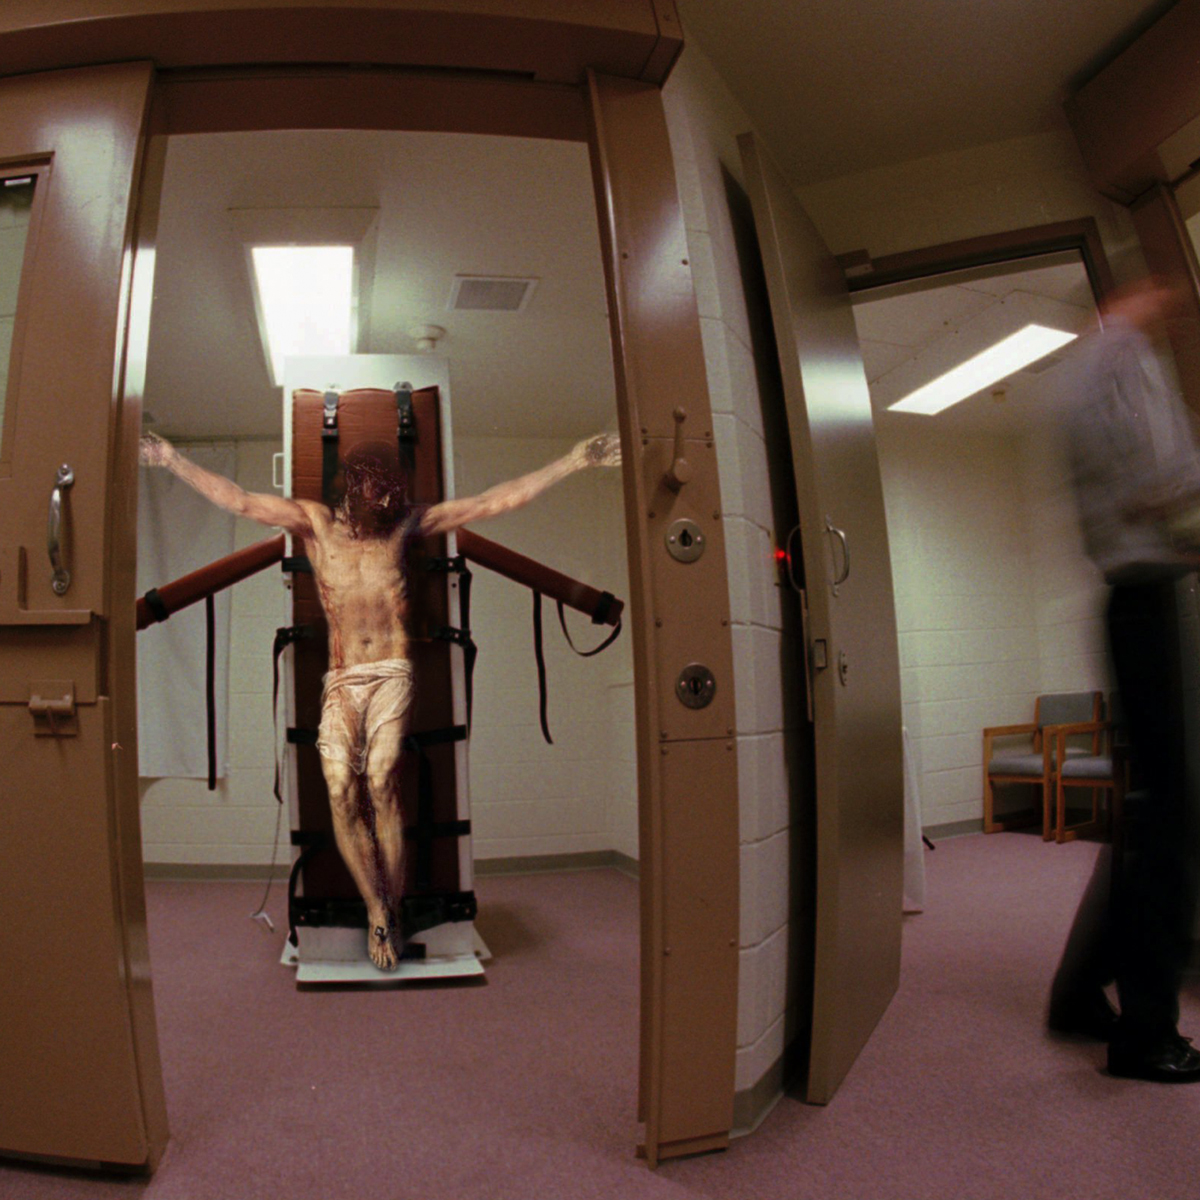 Jesus Christ crucifixion lethal injection table